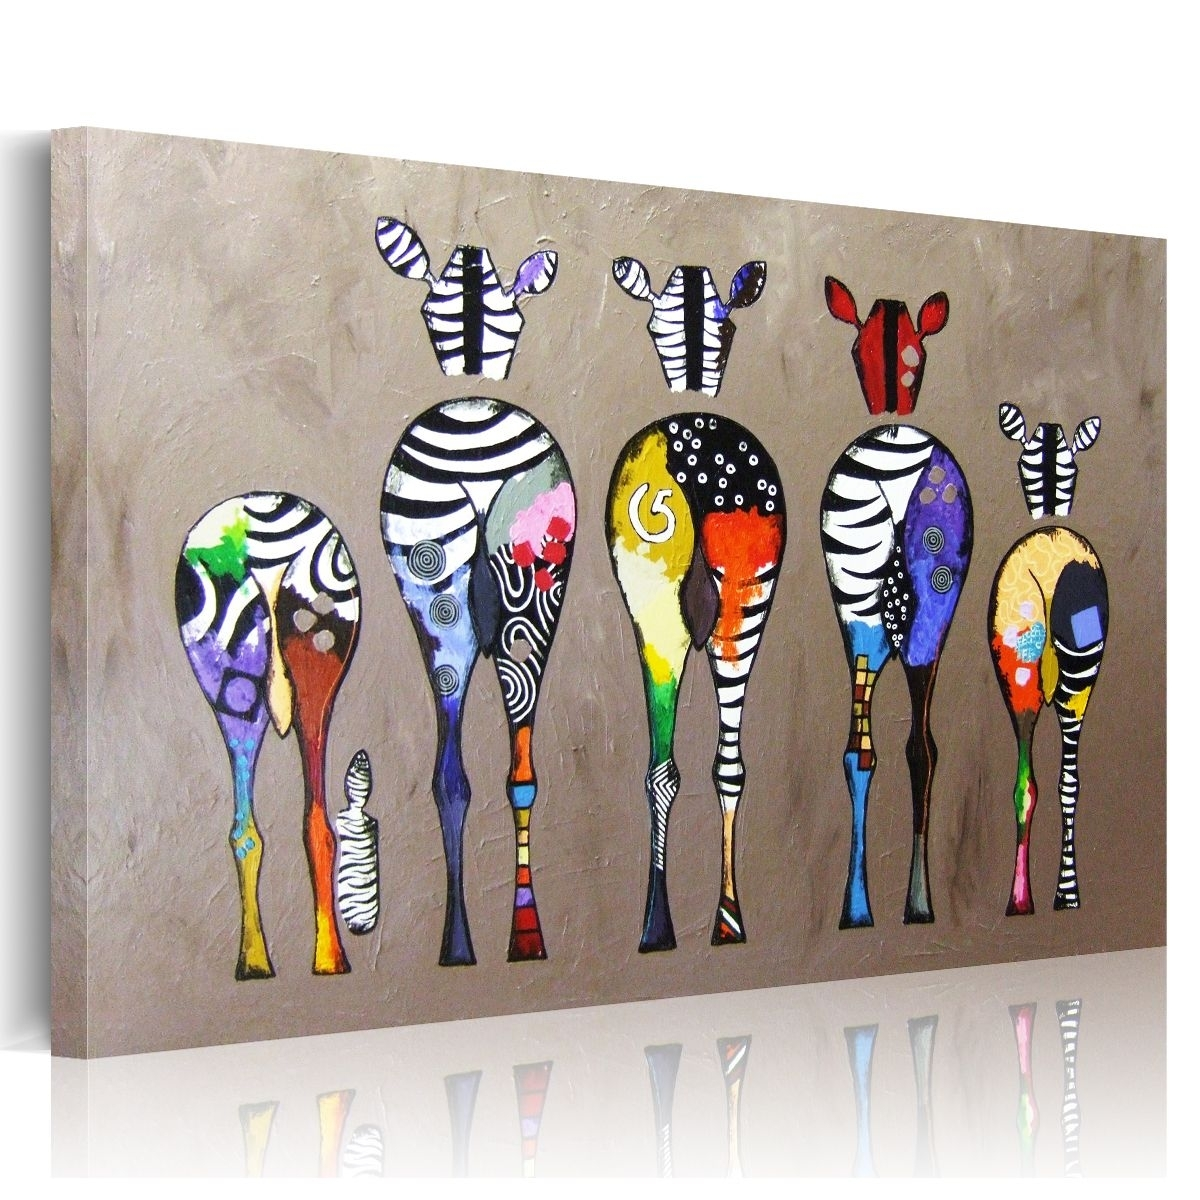 Hd Abstract Zebra Canvas Prints Paintings Wall Art Home Decor With Regard To 2018 Zebra Canvas Wall Art (View 9 of 20)